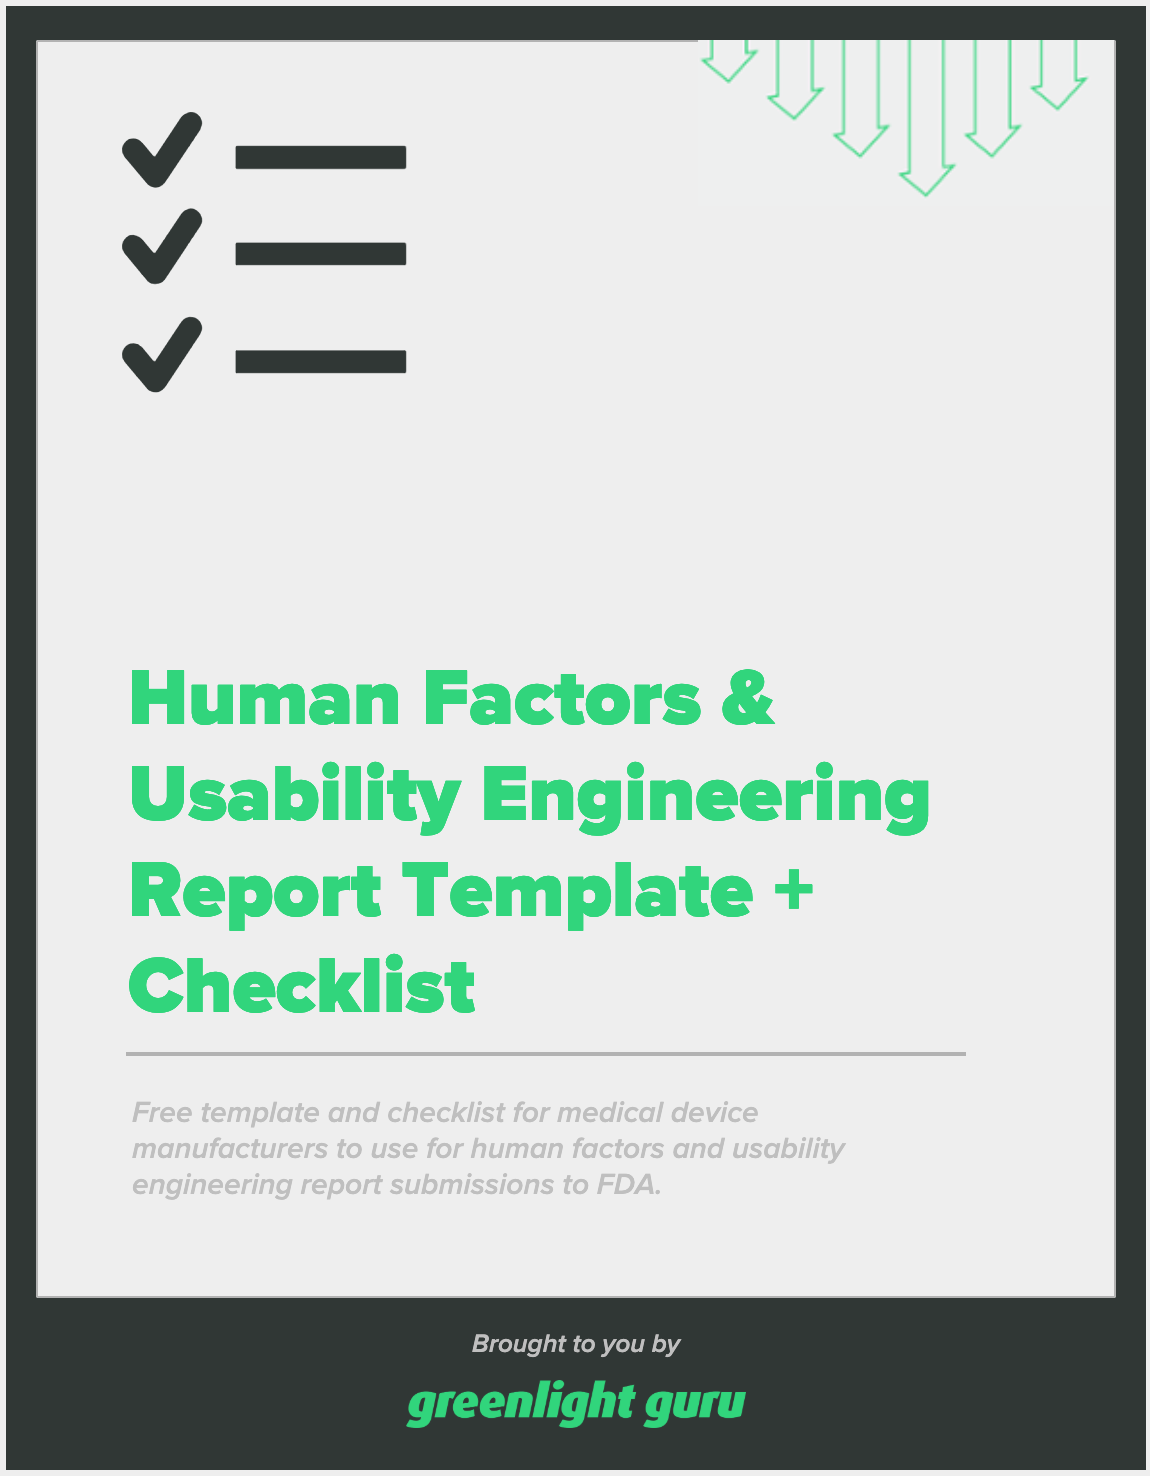 Human Factors & Usability Engineering Report Template + Checklist - slide-in cover